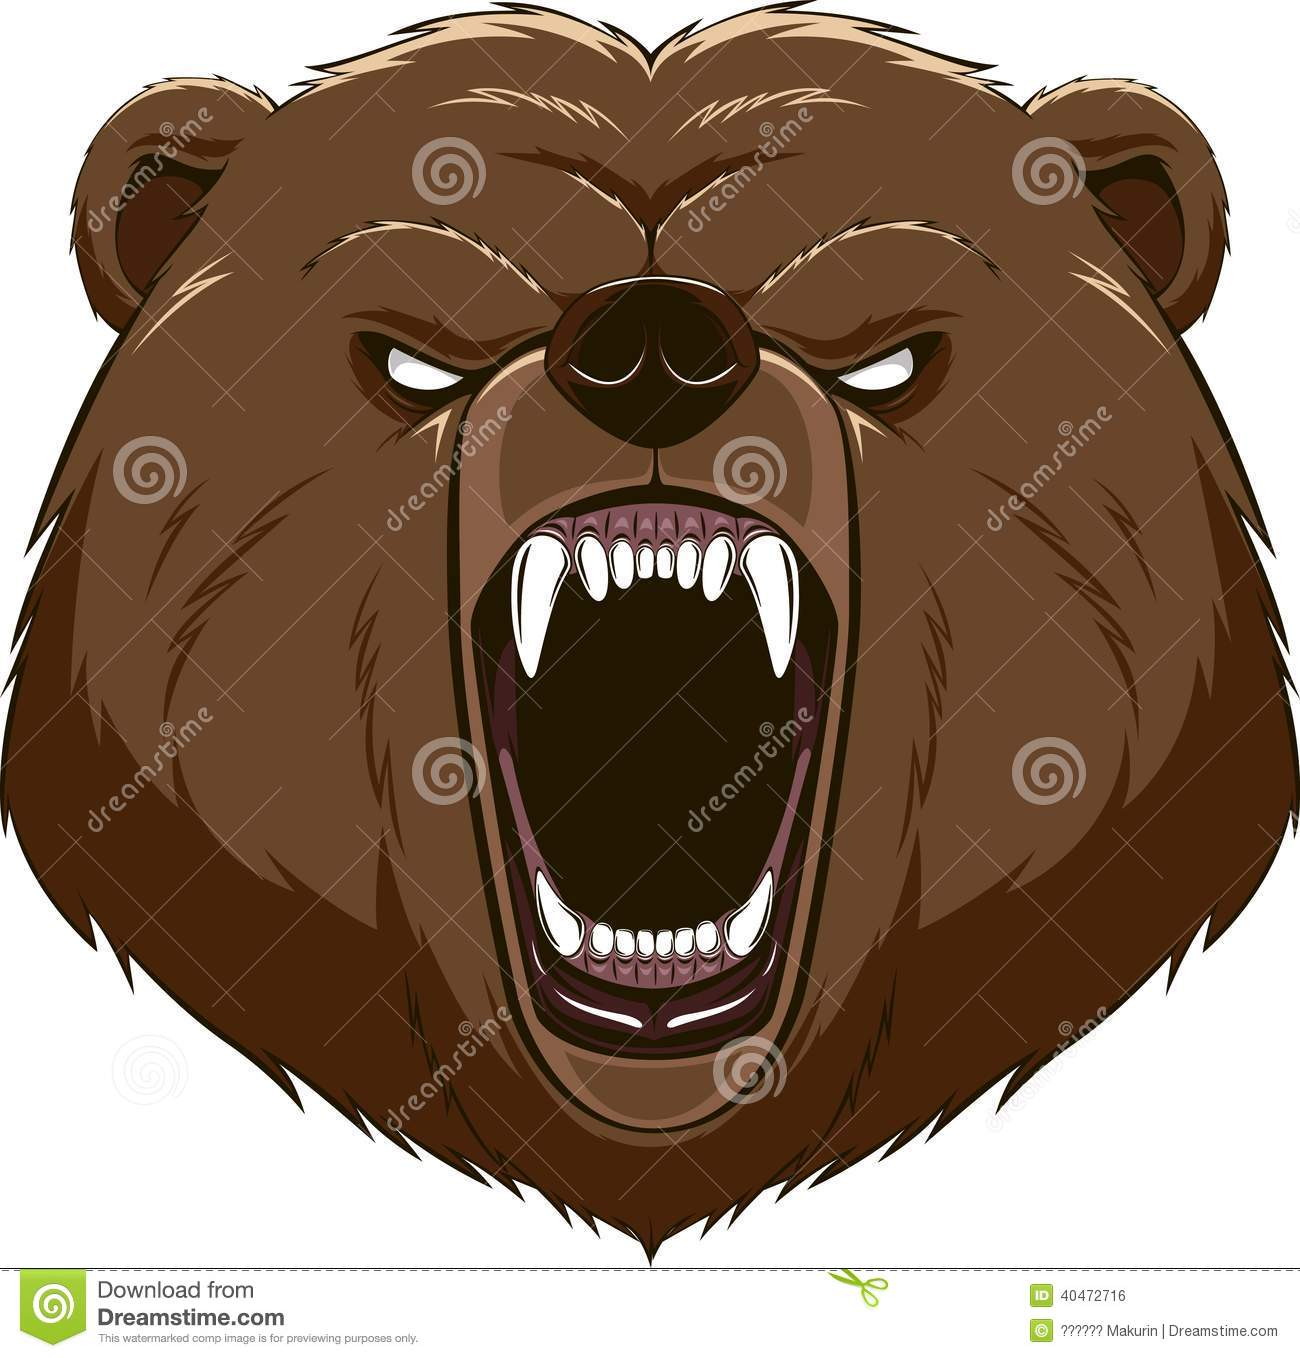 Six Nky Schools To Launch 3d Printer Clubs: Angry Bear Head Mascot Stock Vector